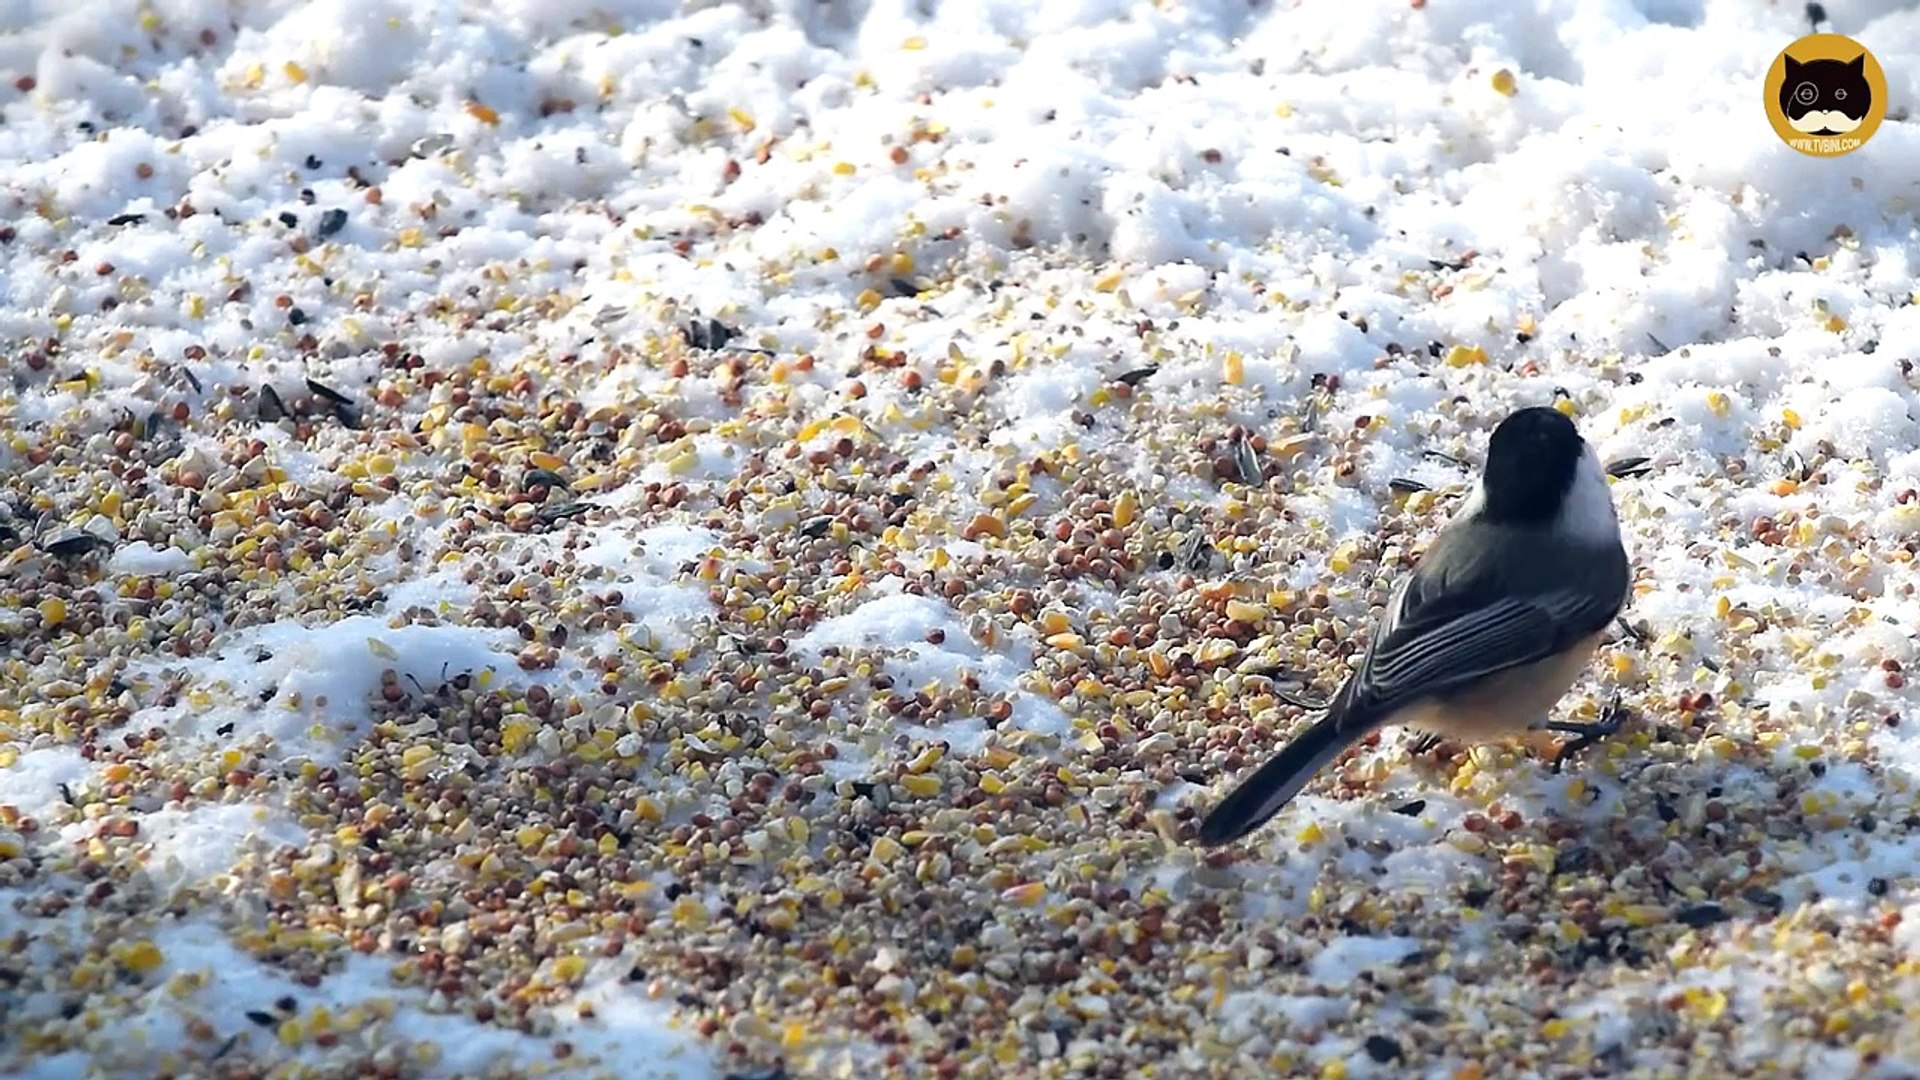 ENTERTAINMENT VIDEO FOR CATS. Winter Birds #2. Sparrows, Mourning Doves, Finches, Chickadee.